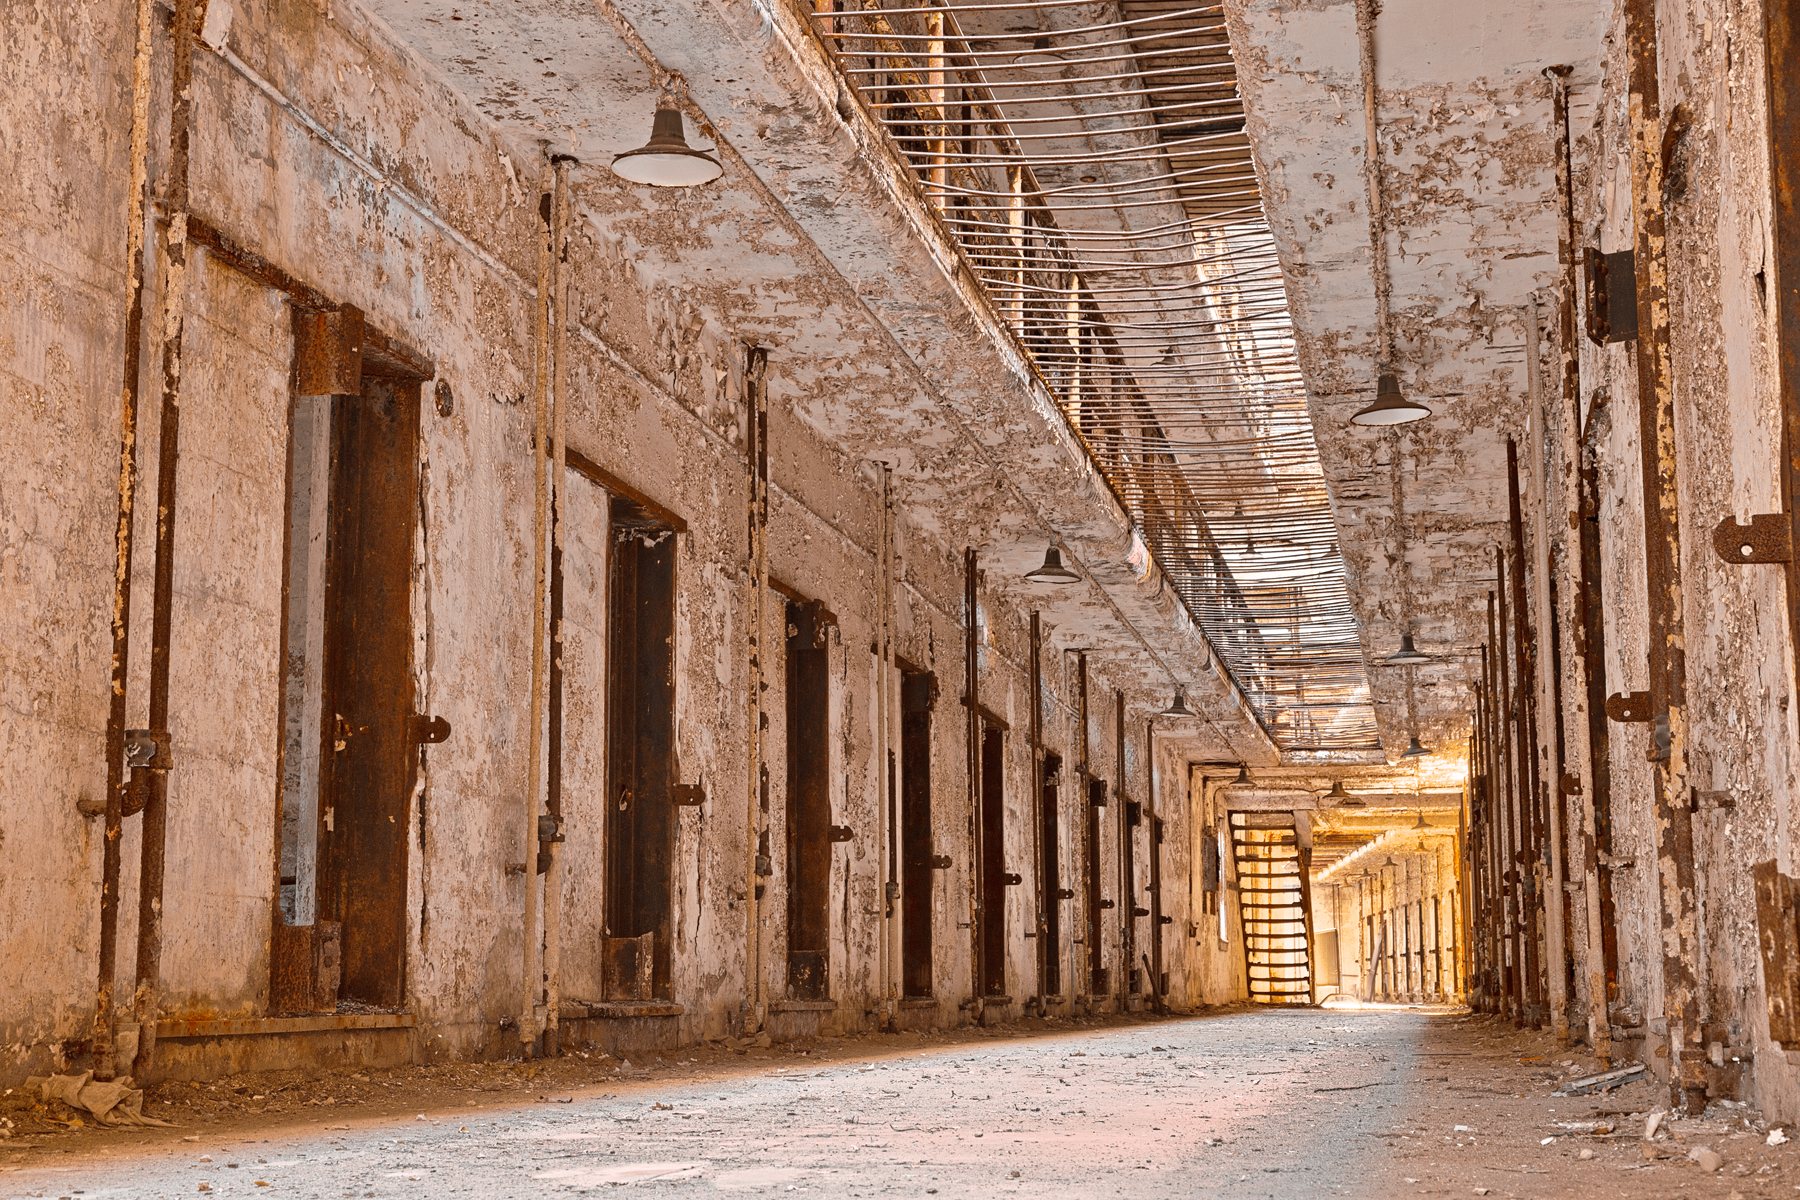 Glowing prison corridor - hdr photo